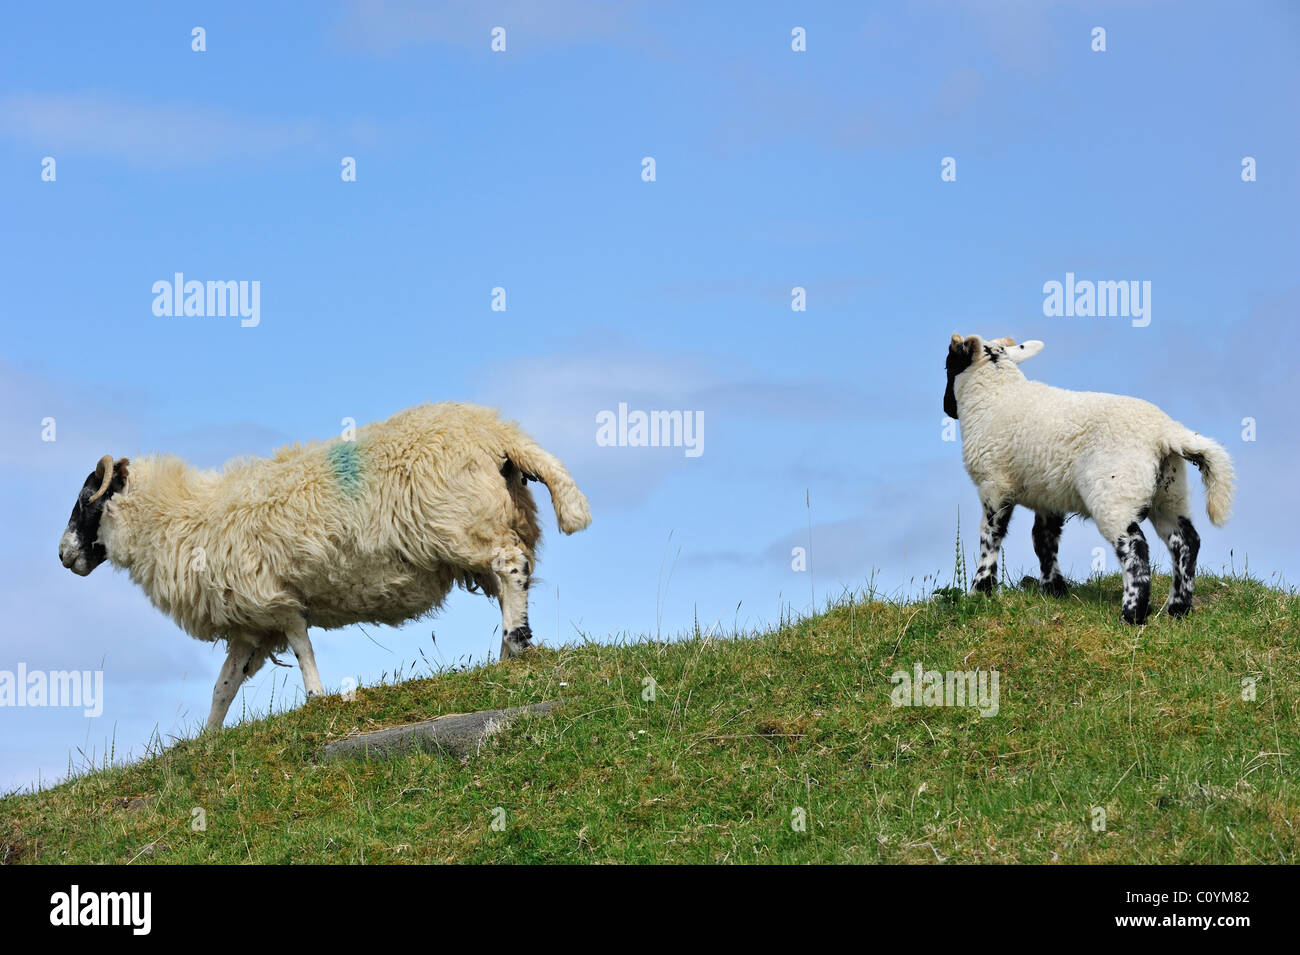 Scottish Black Faced / Blackface Sheep (Ovis aries) ewe and lamb in the Highlands, Scotland, UK - Stock Image